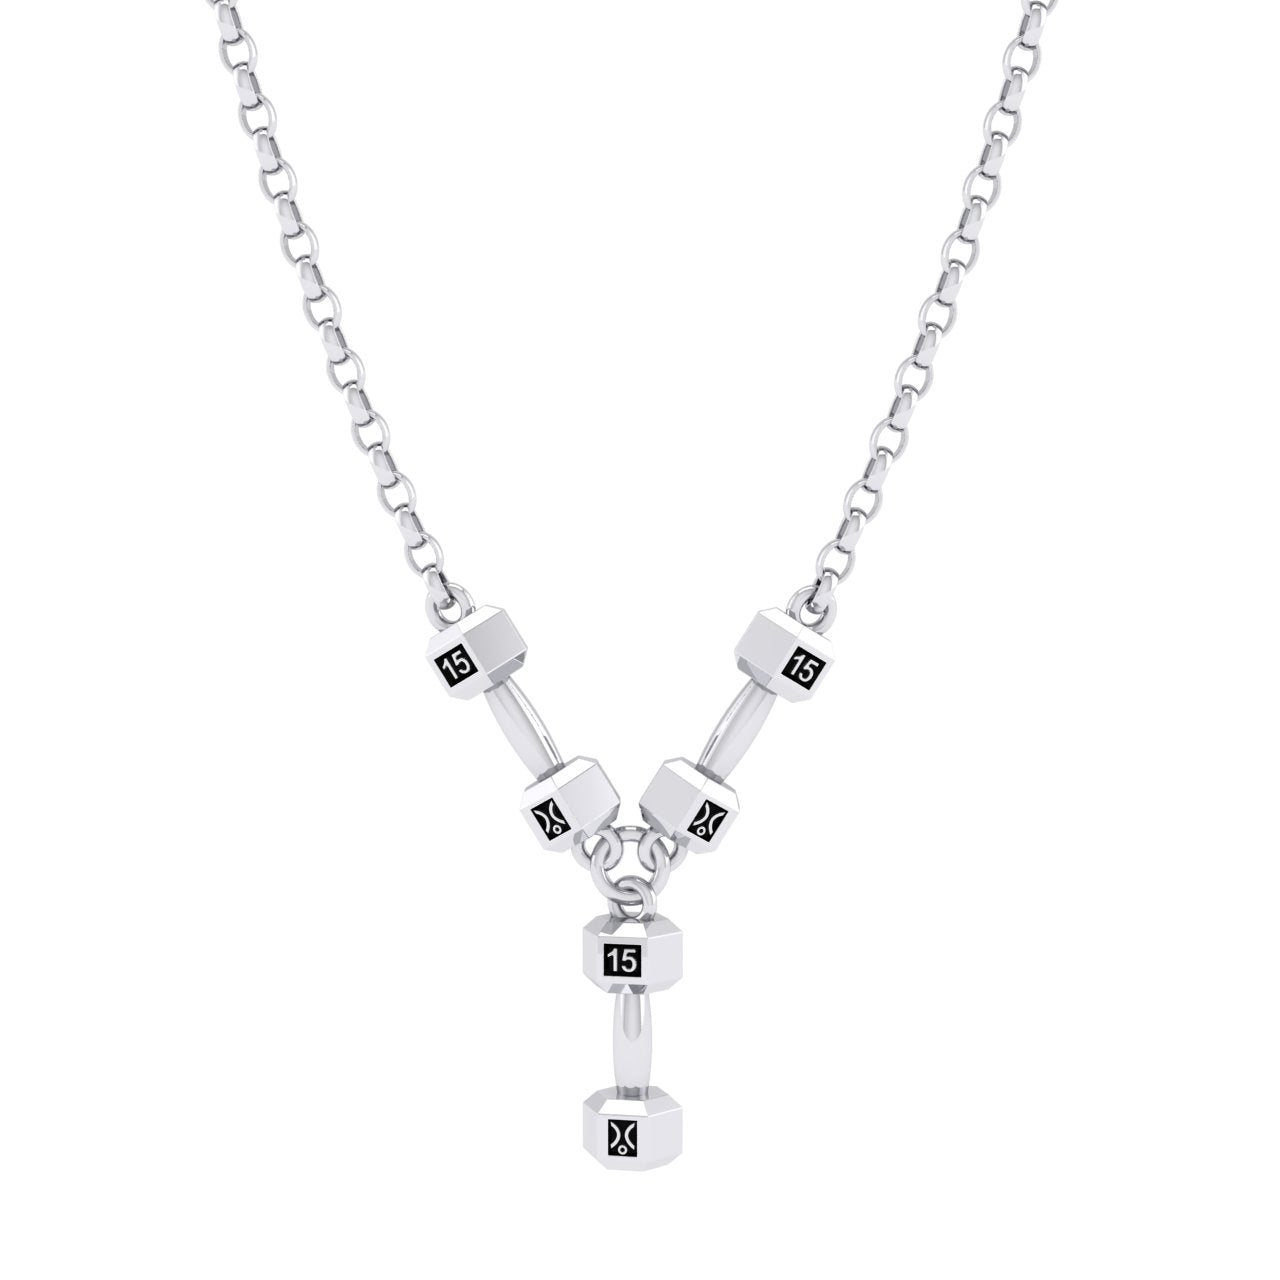 Stg Silver 15kg Triple Dumbell Pendant on chain